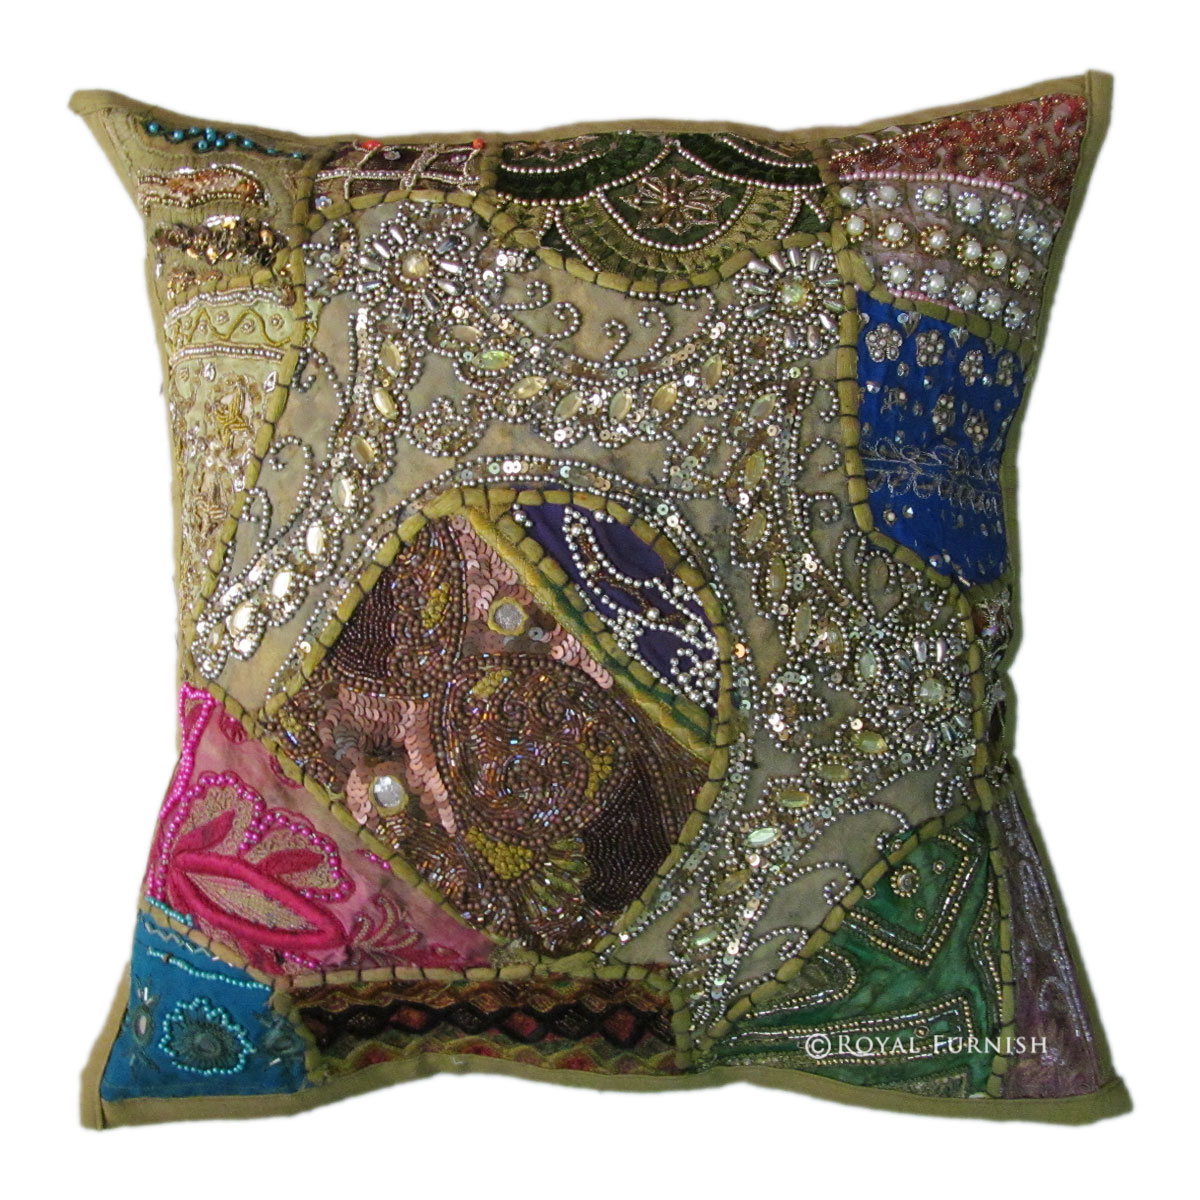 Embroidered Throw Pillow Covers : Green Antique Beaded Patchwork & Embroidered Accent Throw Pillow Cover Sham - RoyalFurnish.com